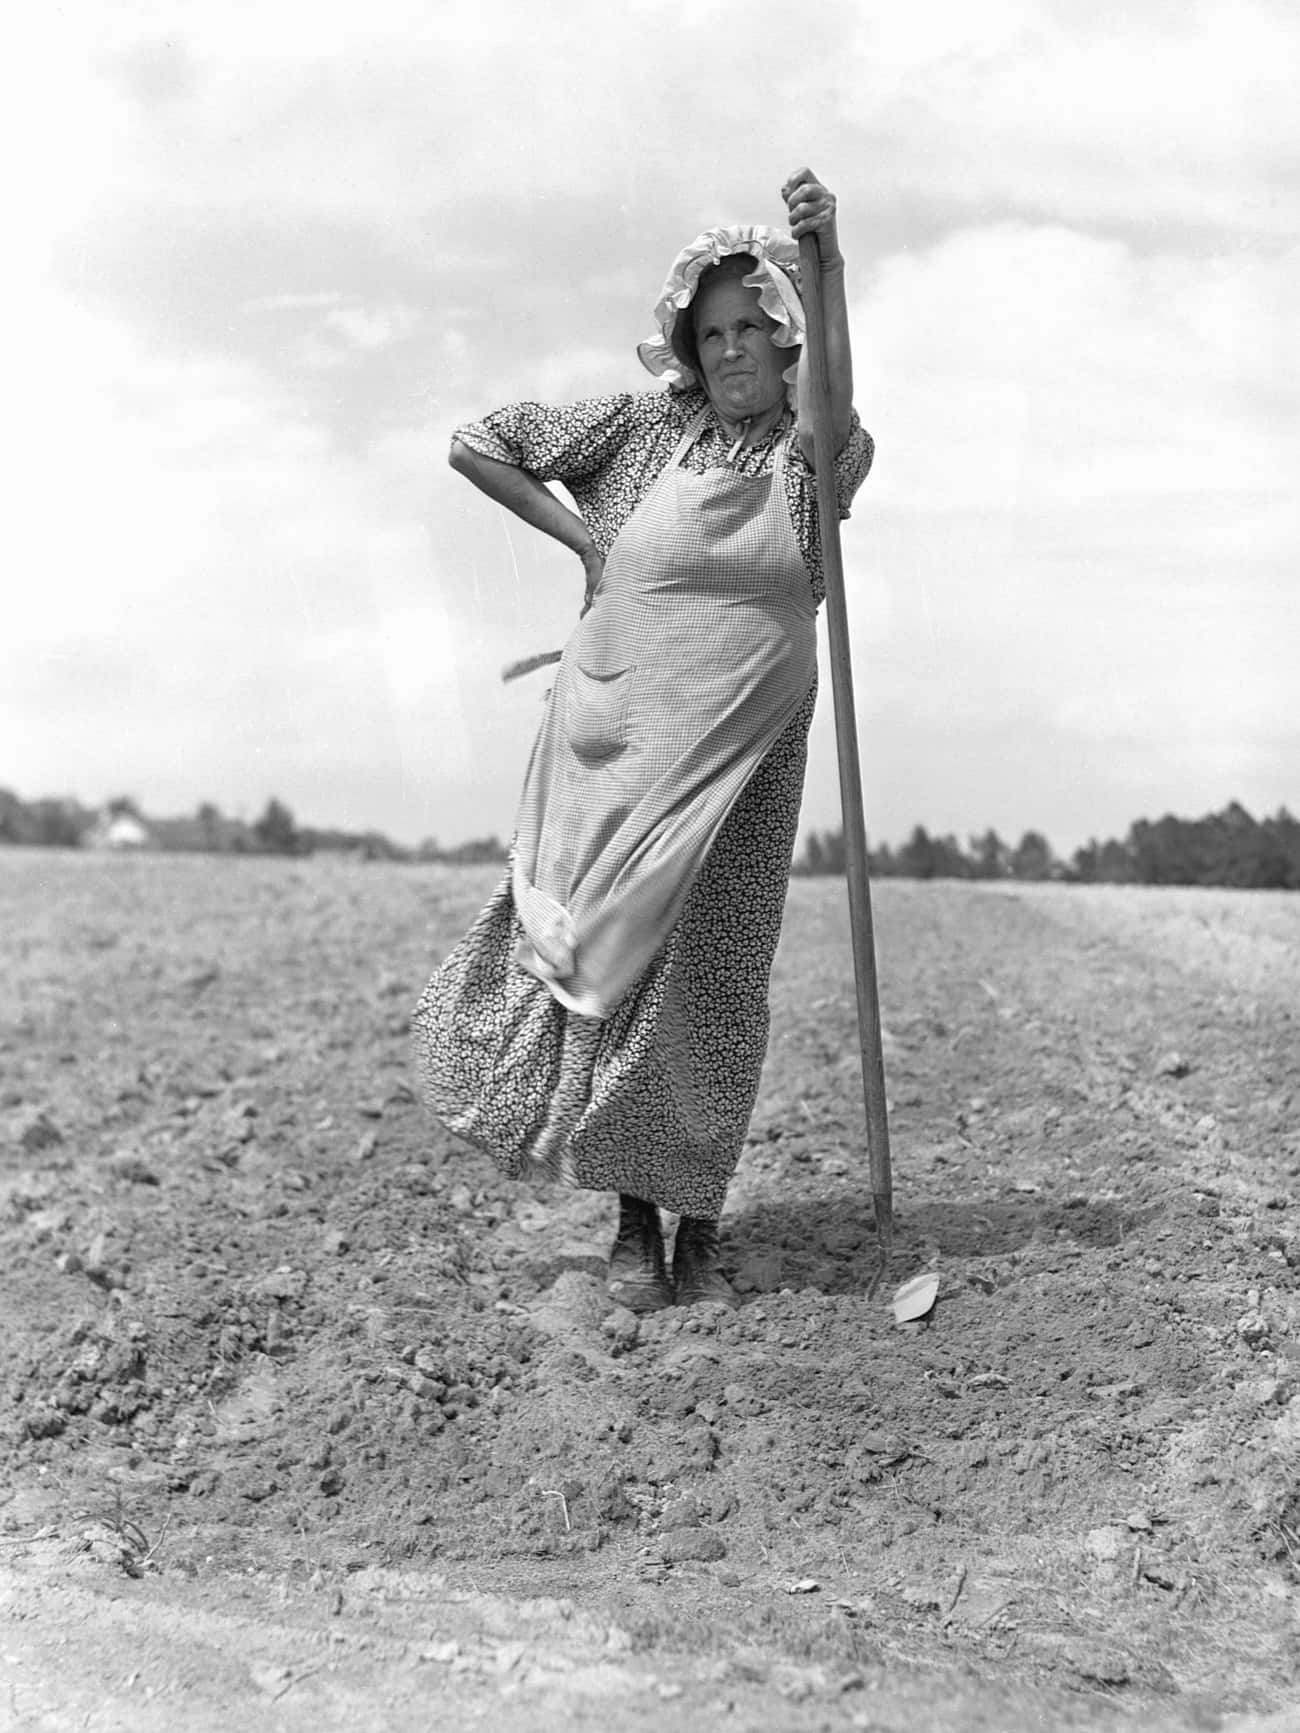 A Farm Woman Helps Her Neighbo is listed (or ranked) 3 on the list 22 Amazing Photos Of Badass Women During The Great Depression